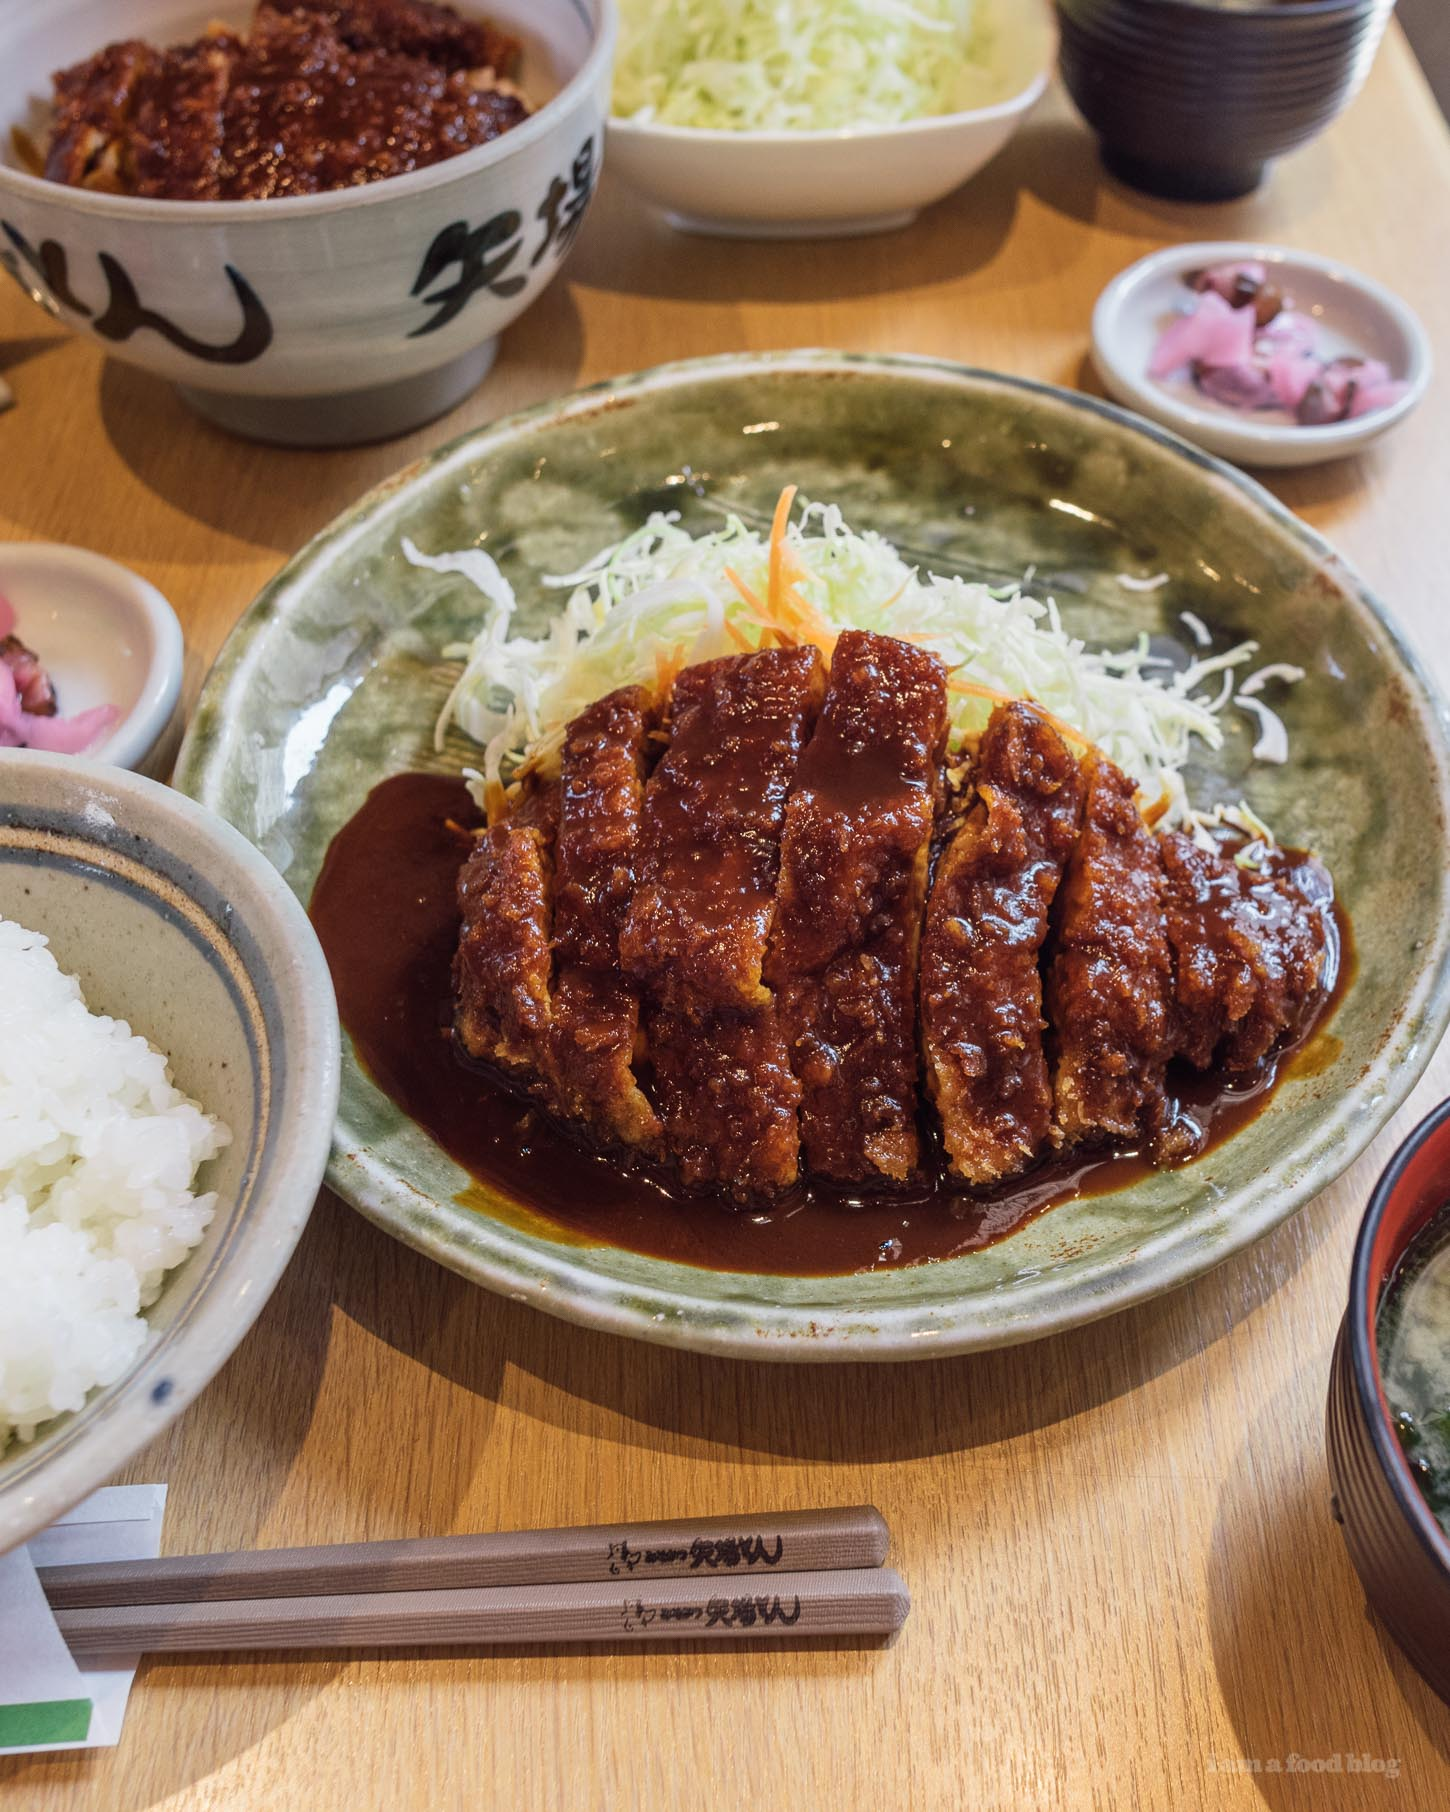 """<img src=""""http://iamafoodblog.com/wp-content/uploads/2019/05/IAM_1132.jpg"""" alt=""""24 Hours in Nagoya, Japan 